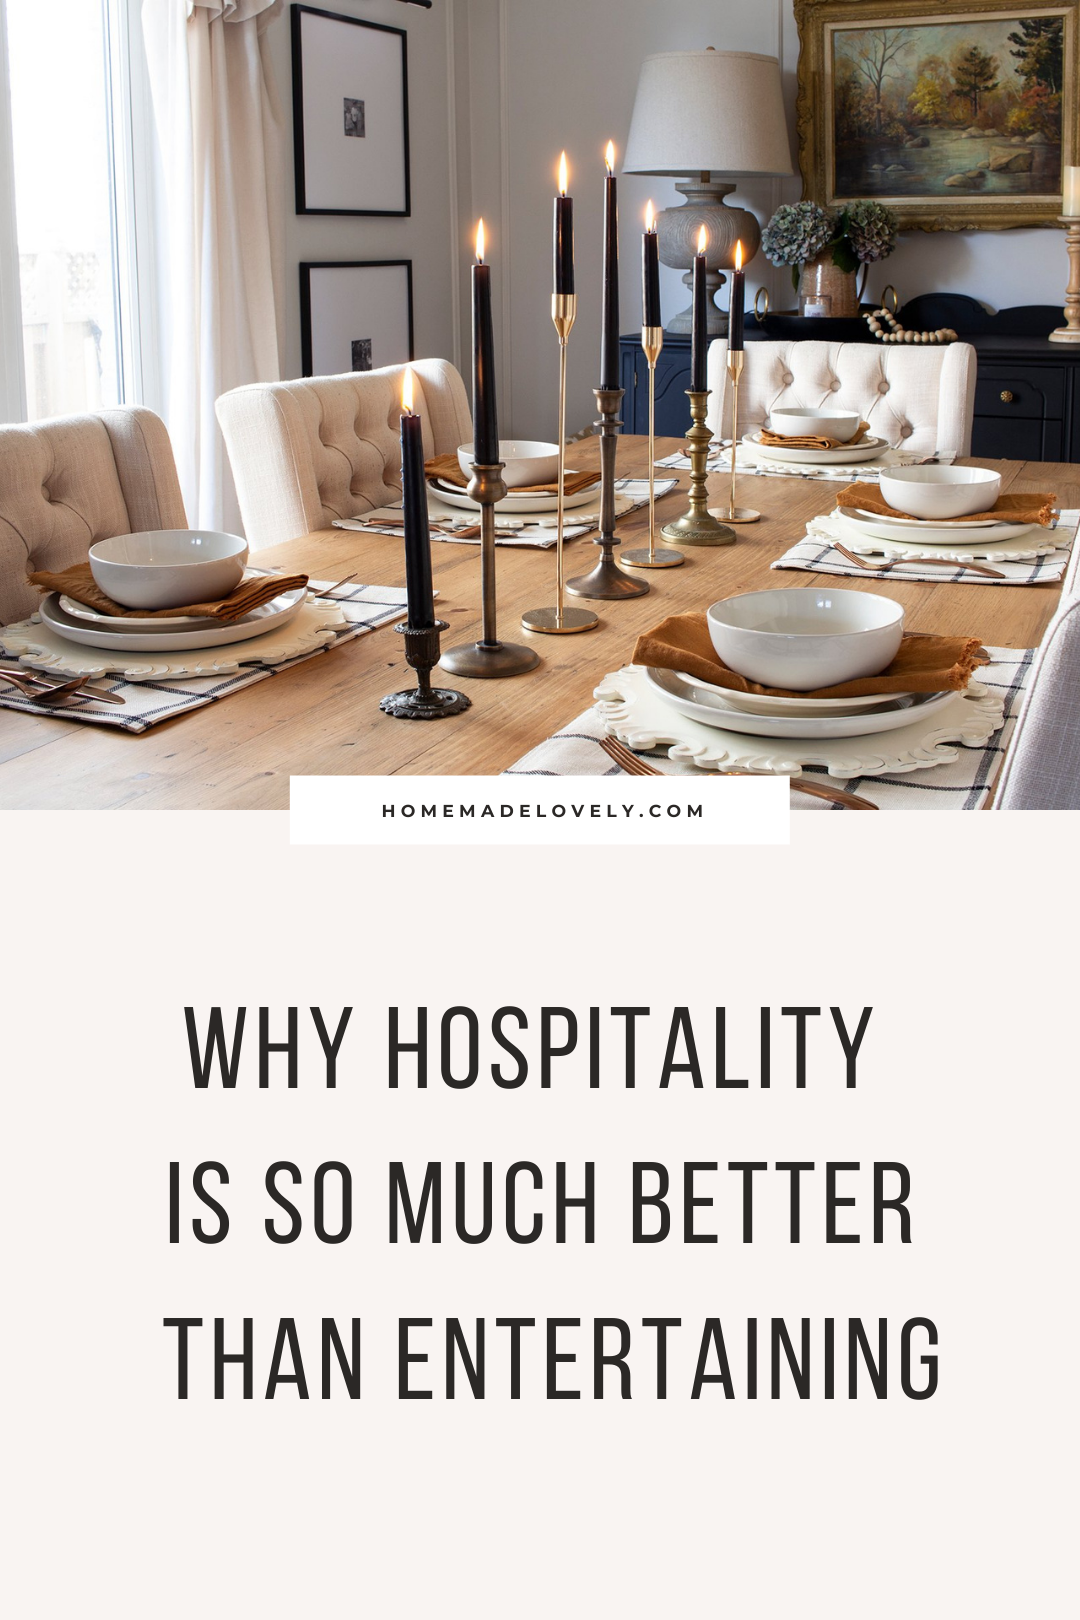 Why hospitality is so much better than entertaining pin 2